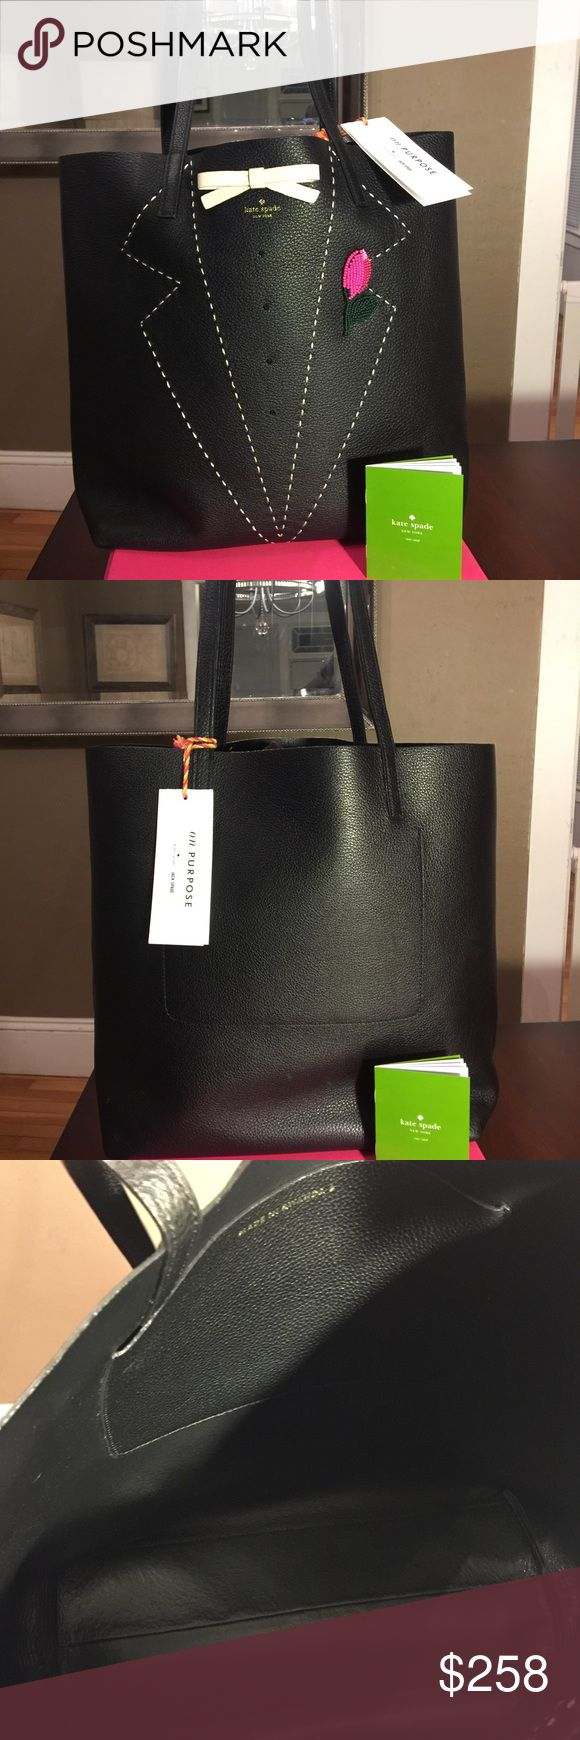 🎉sale🎉♠️Kate Spade tuxedo leat tote on purpose Beautiful all leather Kate spade tote. Detail are gorgeous. Color is black. Dimensions are H 12 1/2 x L 14. Comes with a dust bag. 100% authentic Kate Spade. 🚫No trade 🚫No low offers kate spade Bags Totes